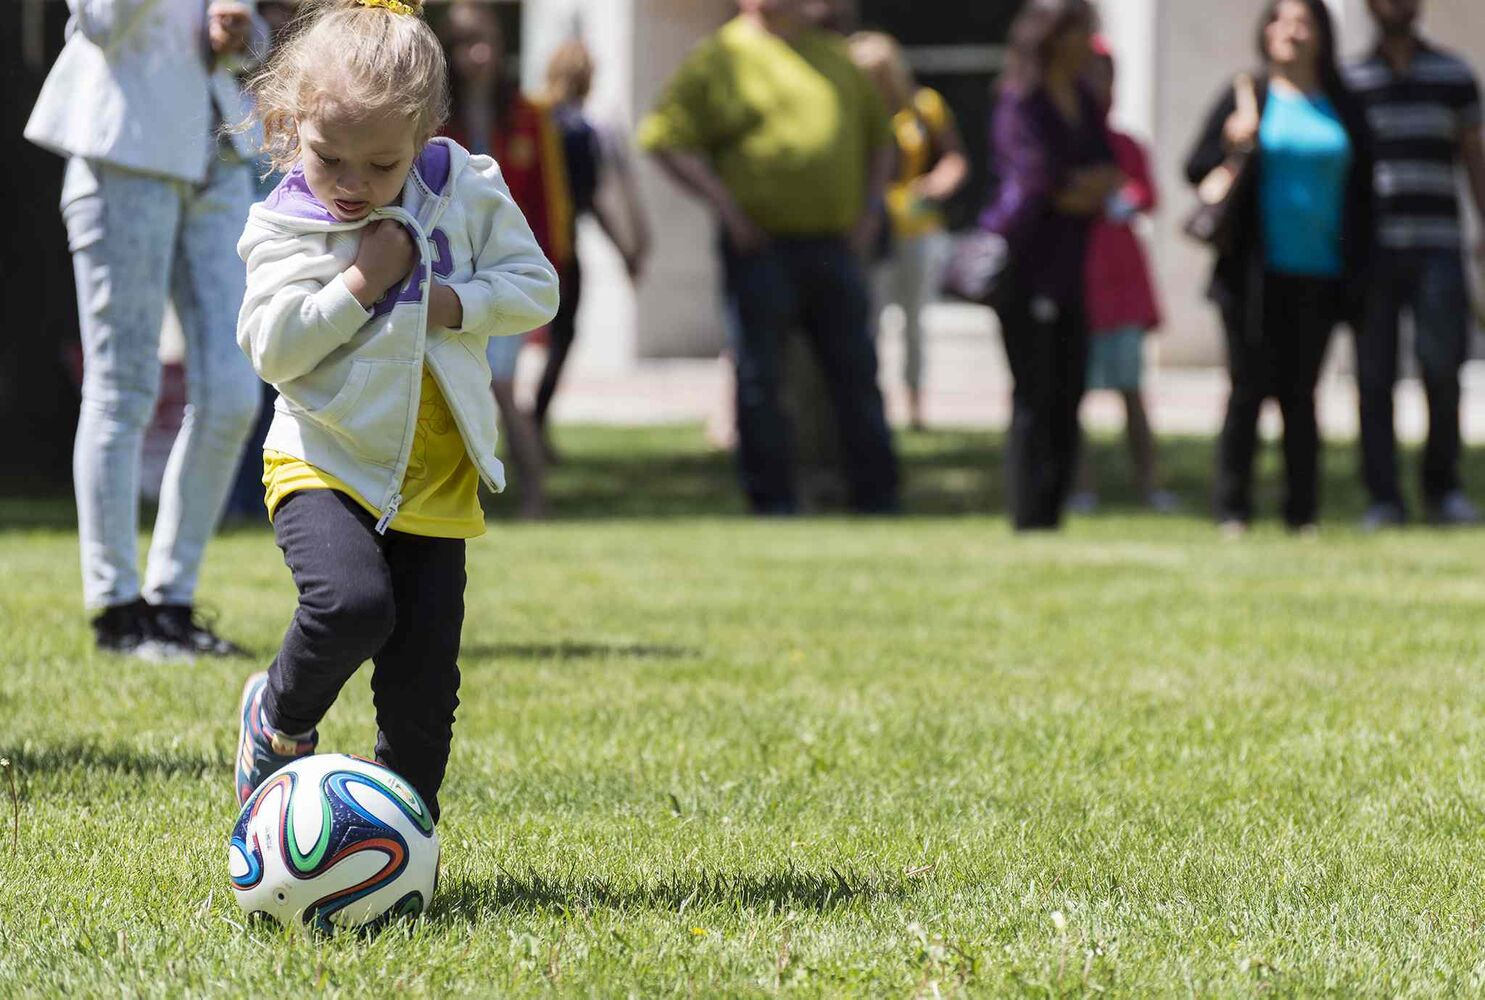 Annie Sophie Kneipp, 4, kicks the soccer ball at Stephen Juba Park for the World Cup pre game party. She and her family are visiting Winnipeg from Brazil. (Sarah Taylor / Winnipeg Free Press)